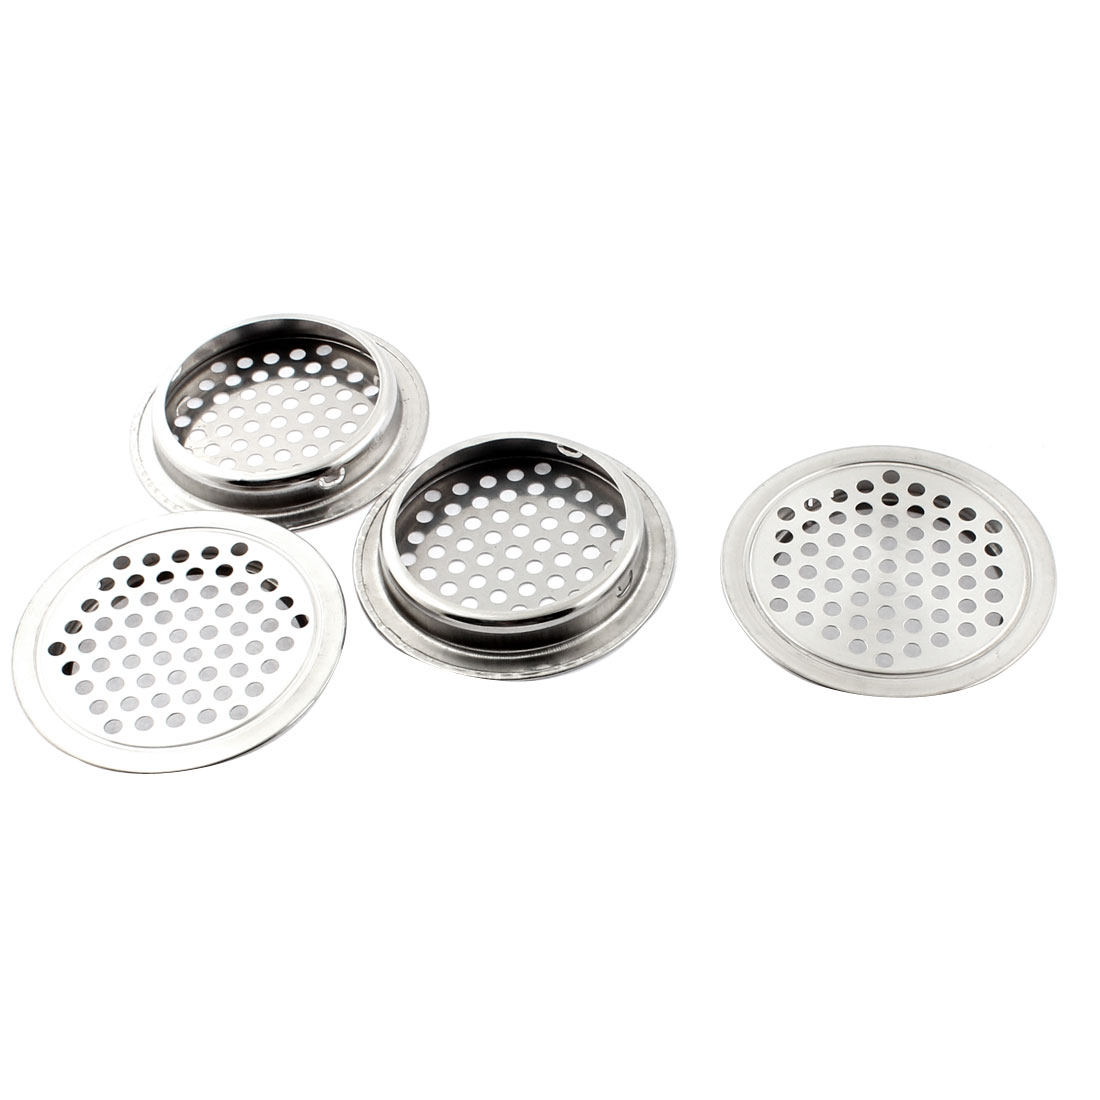 Kitchen Cabinet 65mm Dia Round Metal Mesh Hole Air Vent Louver Silver Tone 4pcs